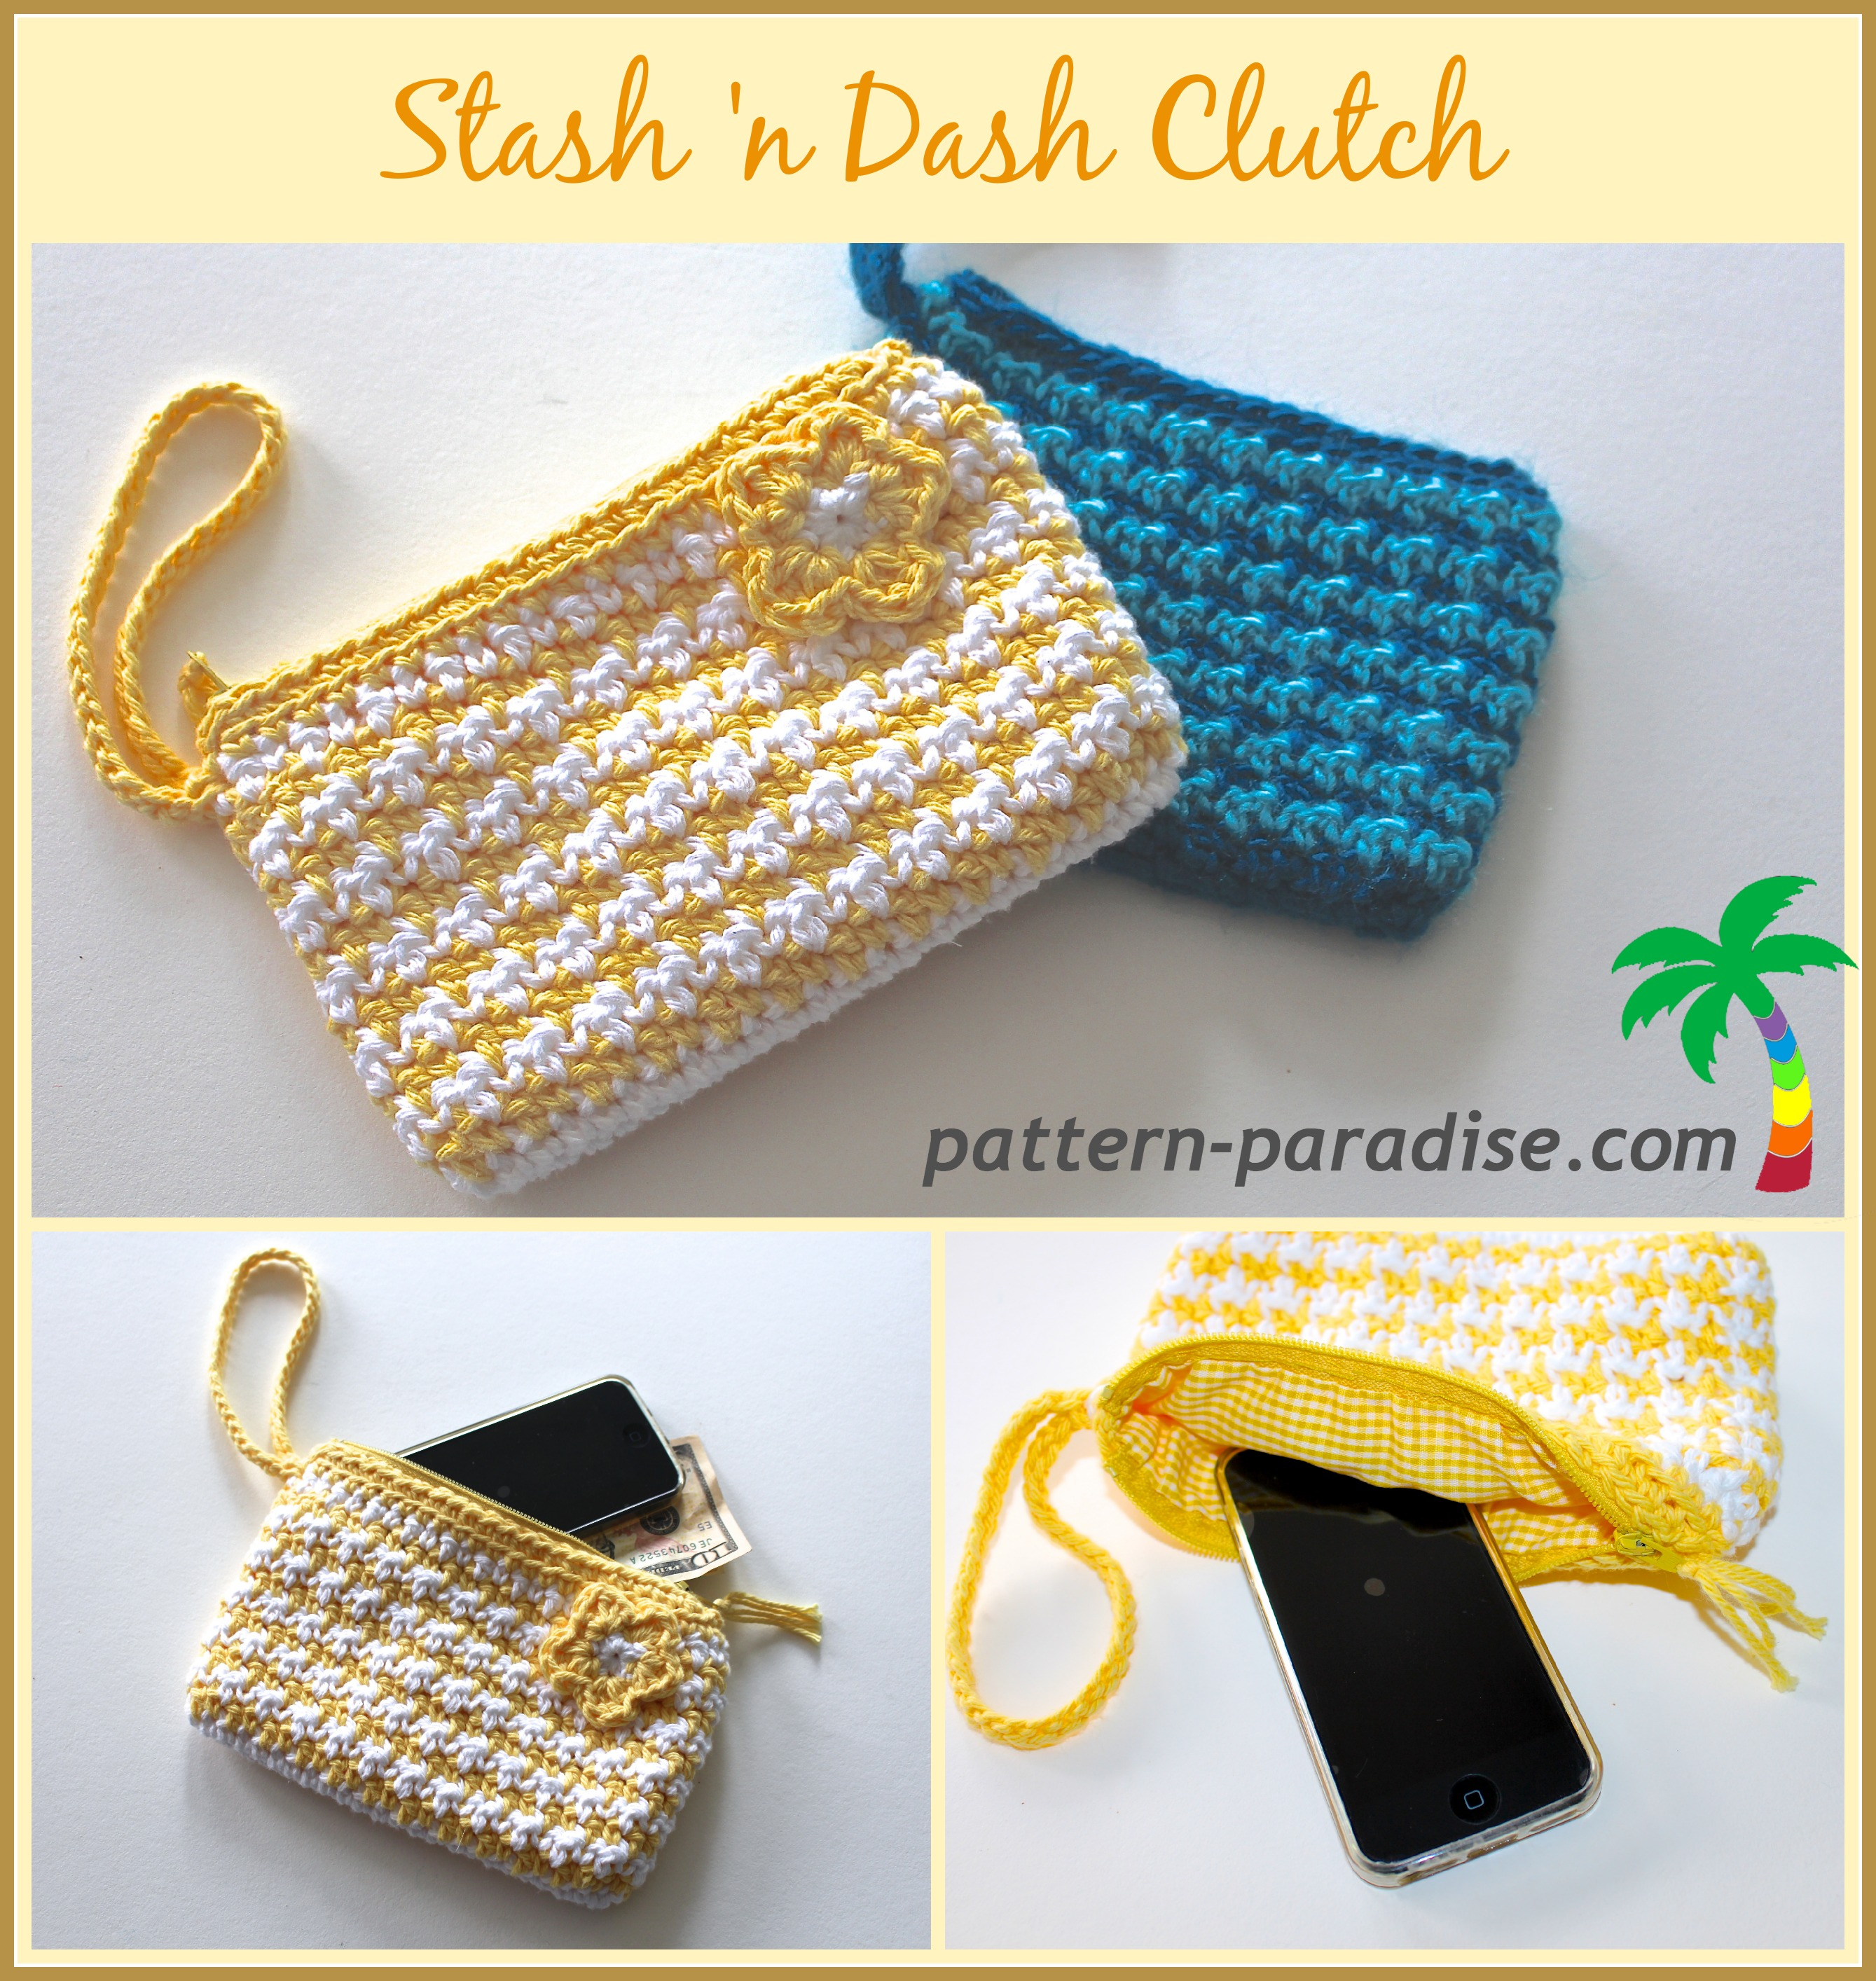 Crochet Clutch Pattern Free : FREE Crochet Pattern - Stash n Dash Clutch Pattern Paradise